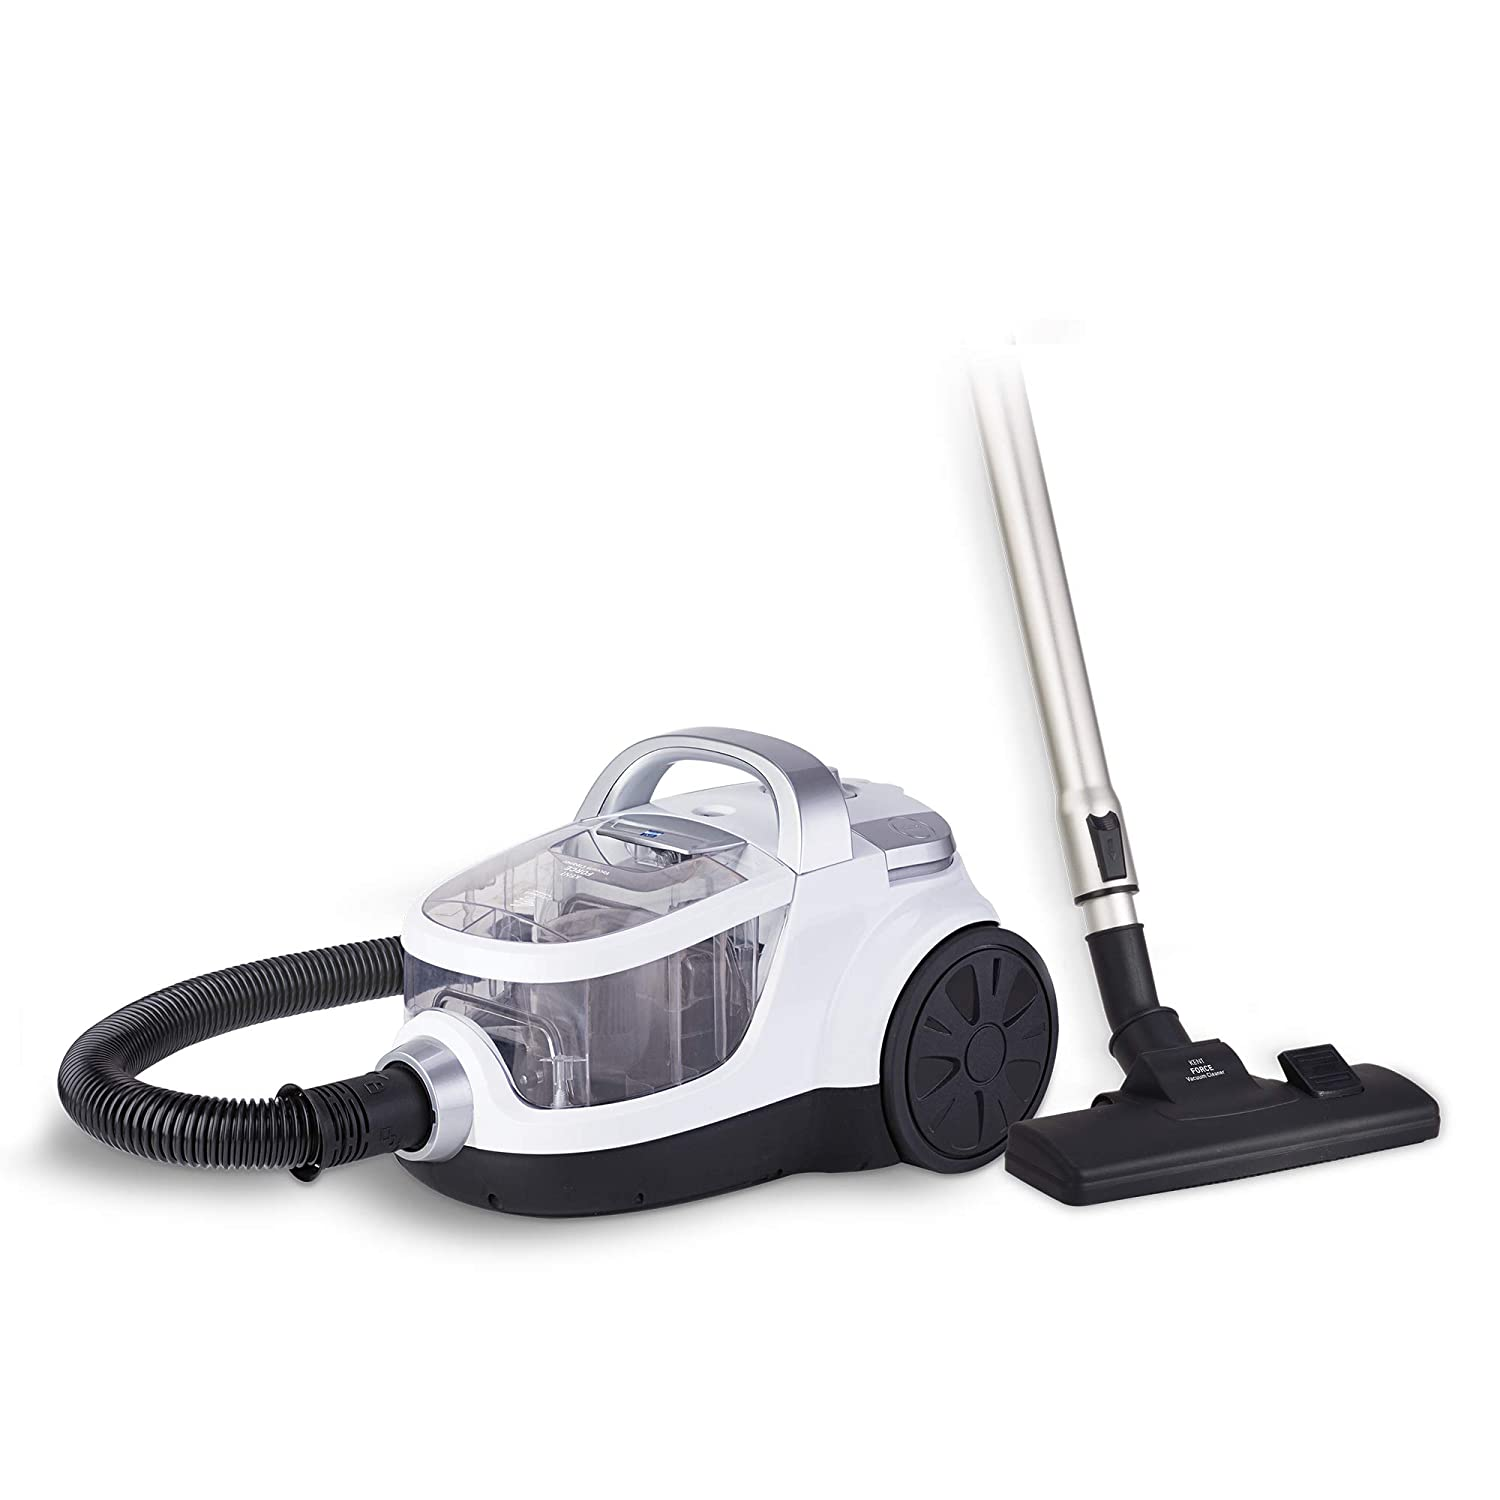 Open-Box & Refurbished (Unused) KENT Force Cyclonic Vacuum Cleaner 2000-Watt (White and Silver) kida.in